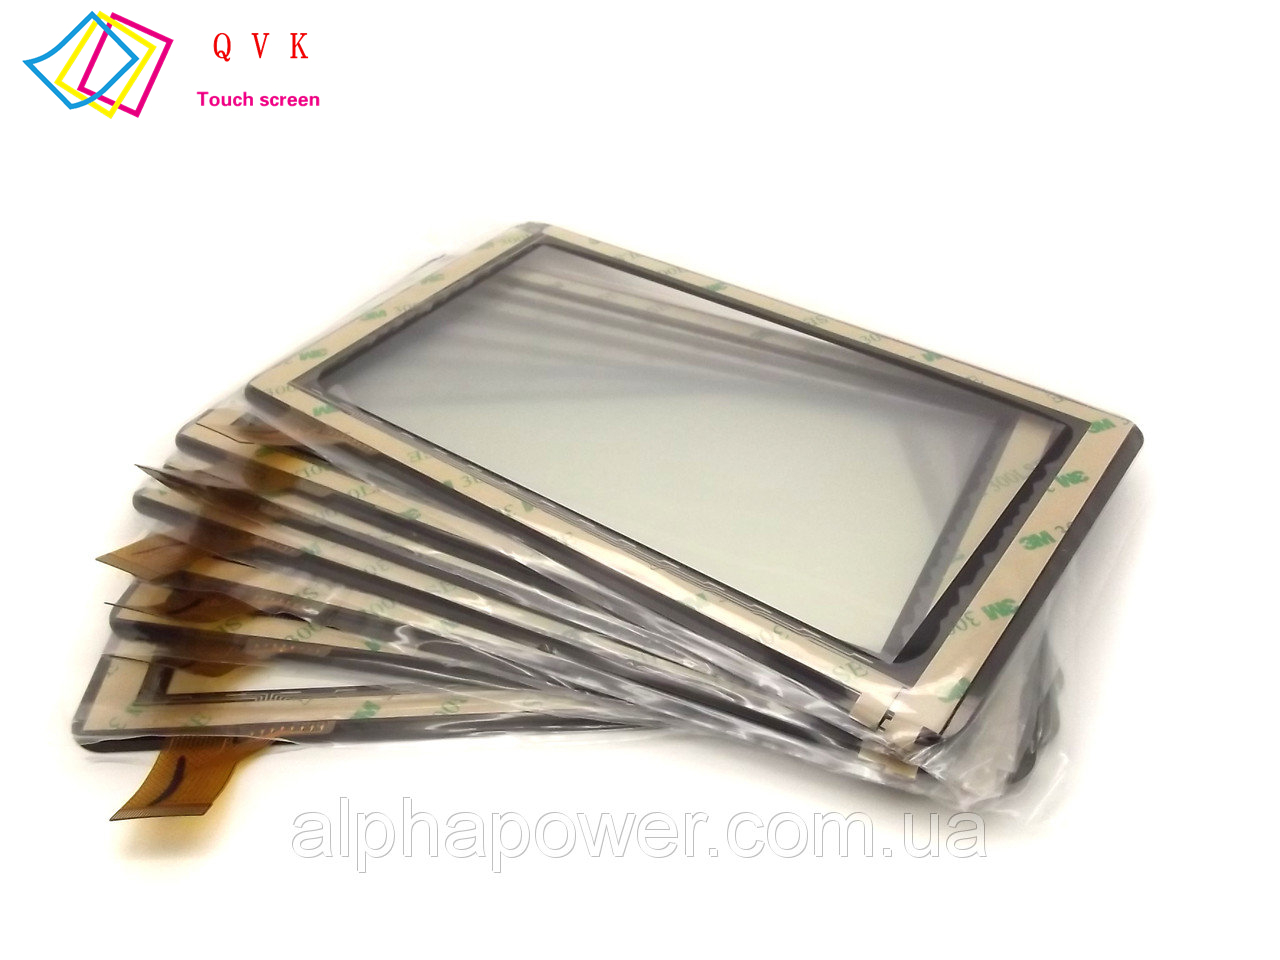 7 Inch for Touch Screen Vidrio Tactil P/ Tablet 7 Bgh Y200 Y200 Kids tablet pc capacitive touch screen glass digitizer panel